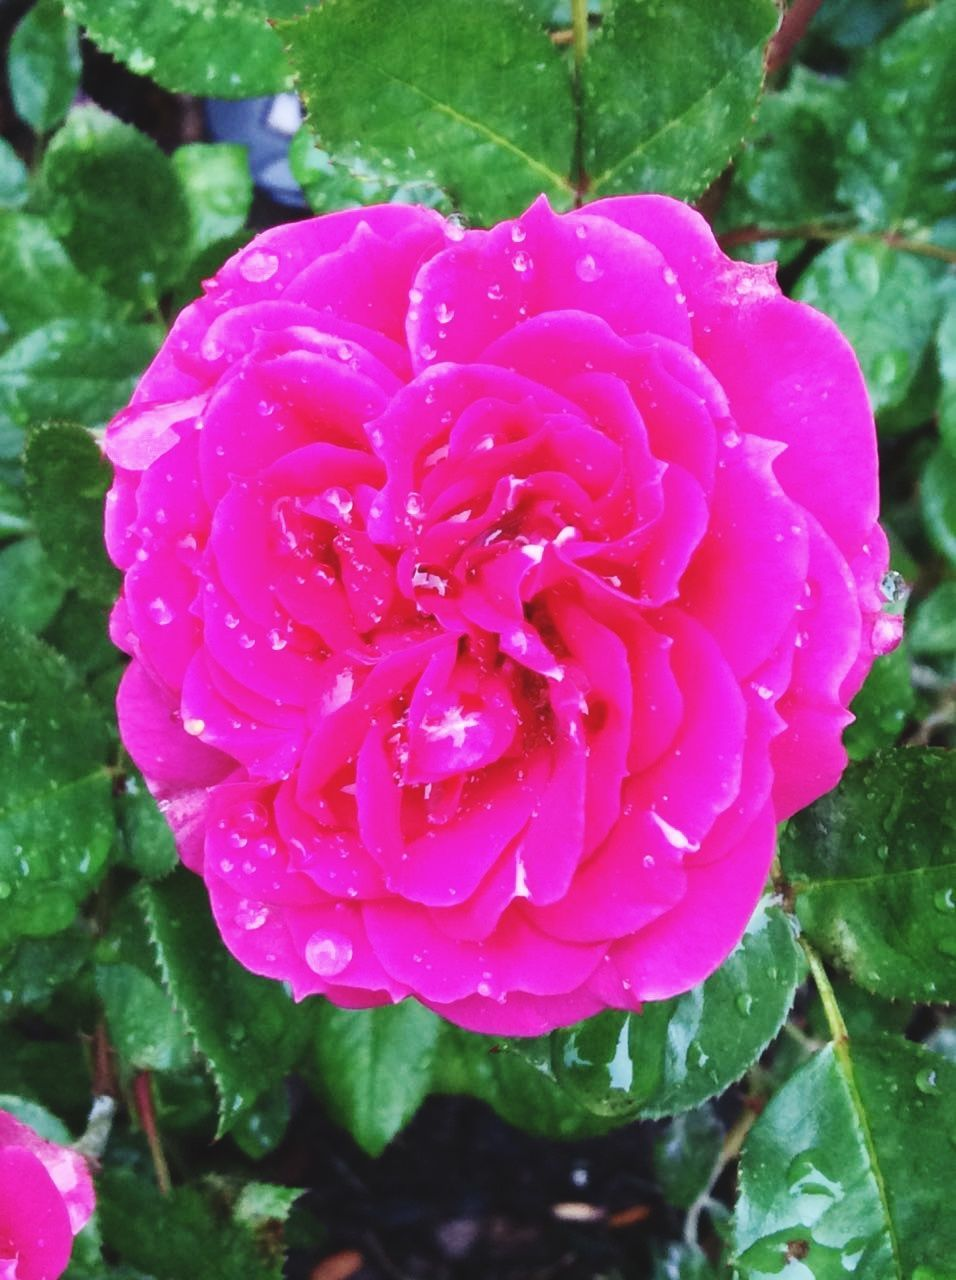 flower, petal, nature, beauty in nature, growth, drop, plant, water, wet, fragility, freshness, no people, flower head, outdoors, day, blooming, close-up, raindrop, leaf, pink color